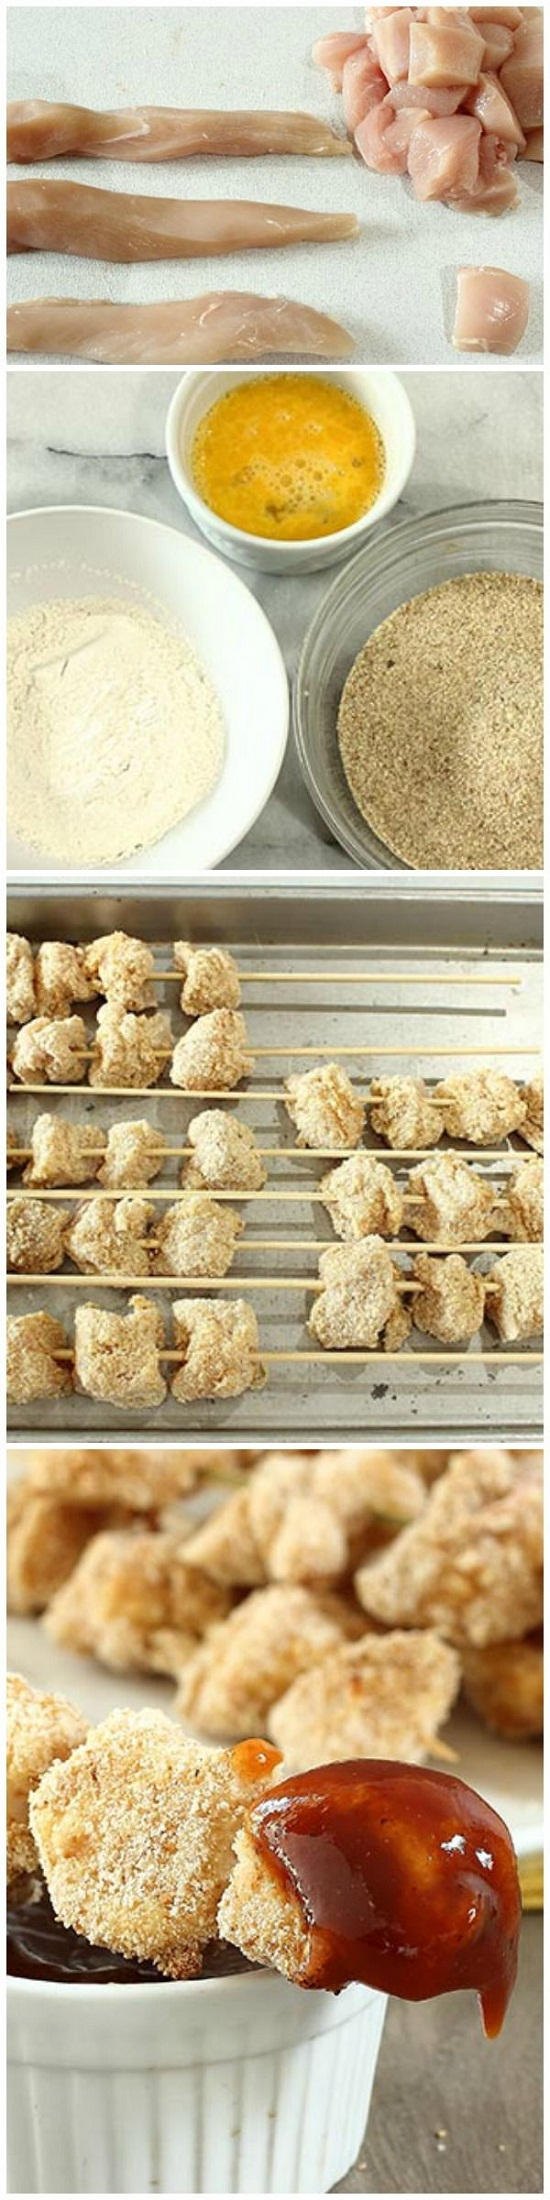 Popcorn-Chicken-Pops-Recipe